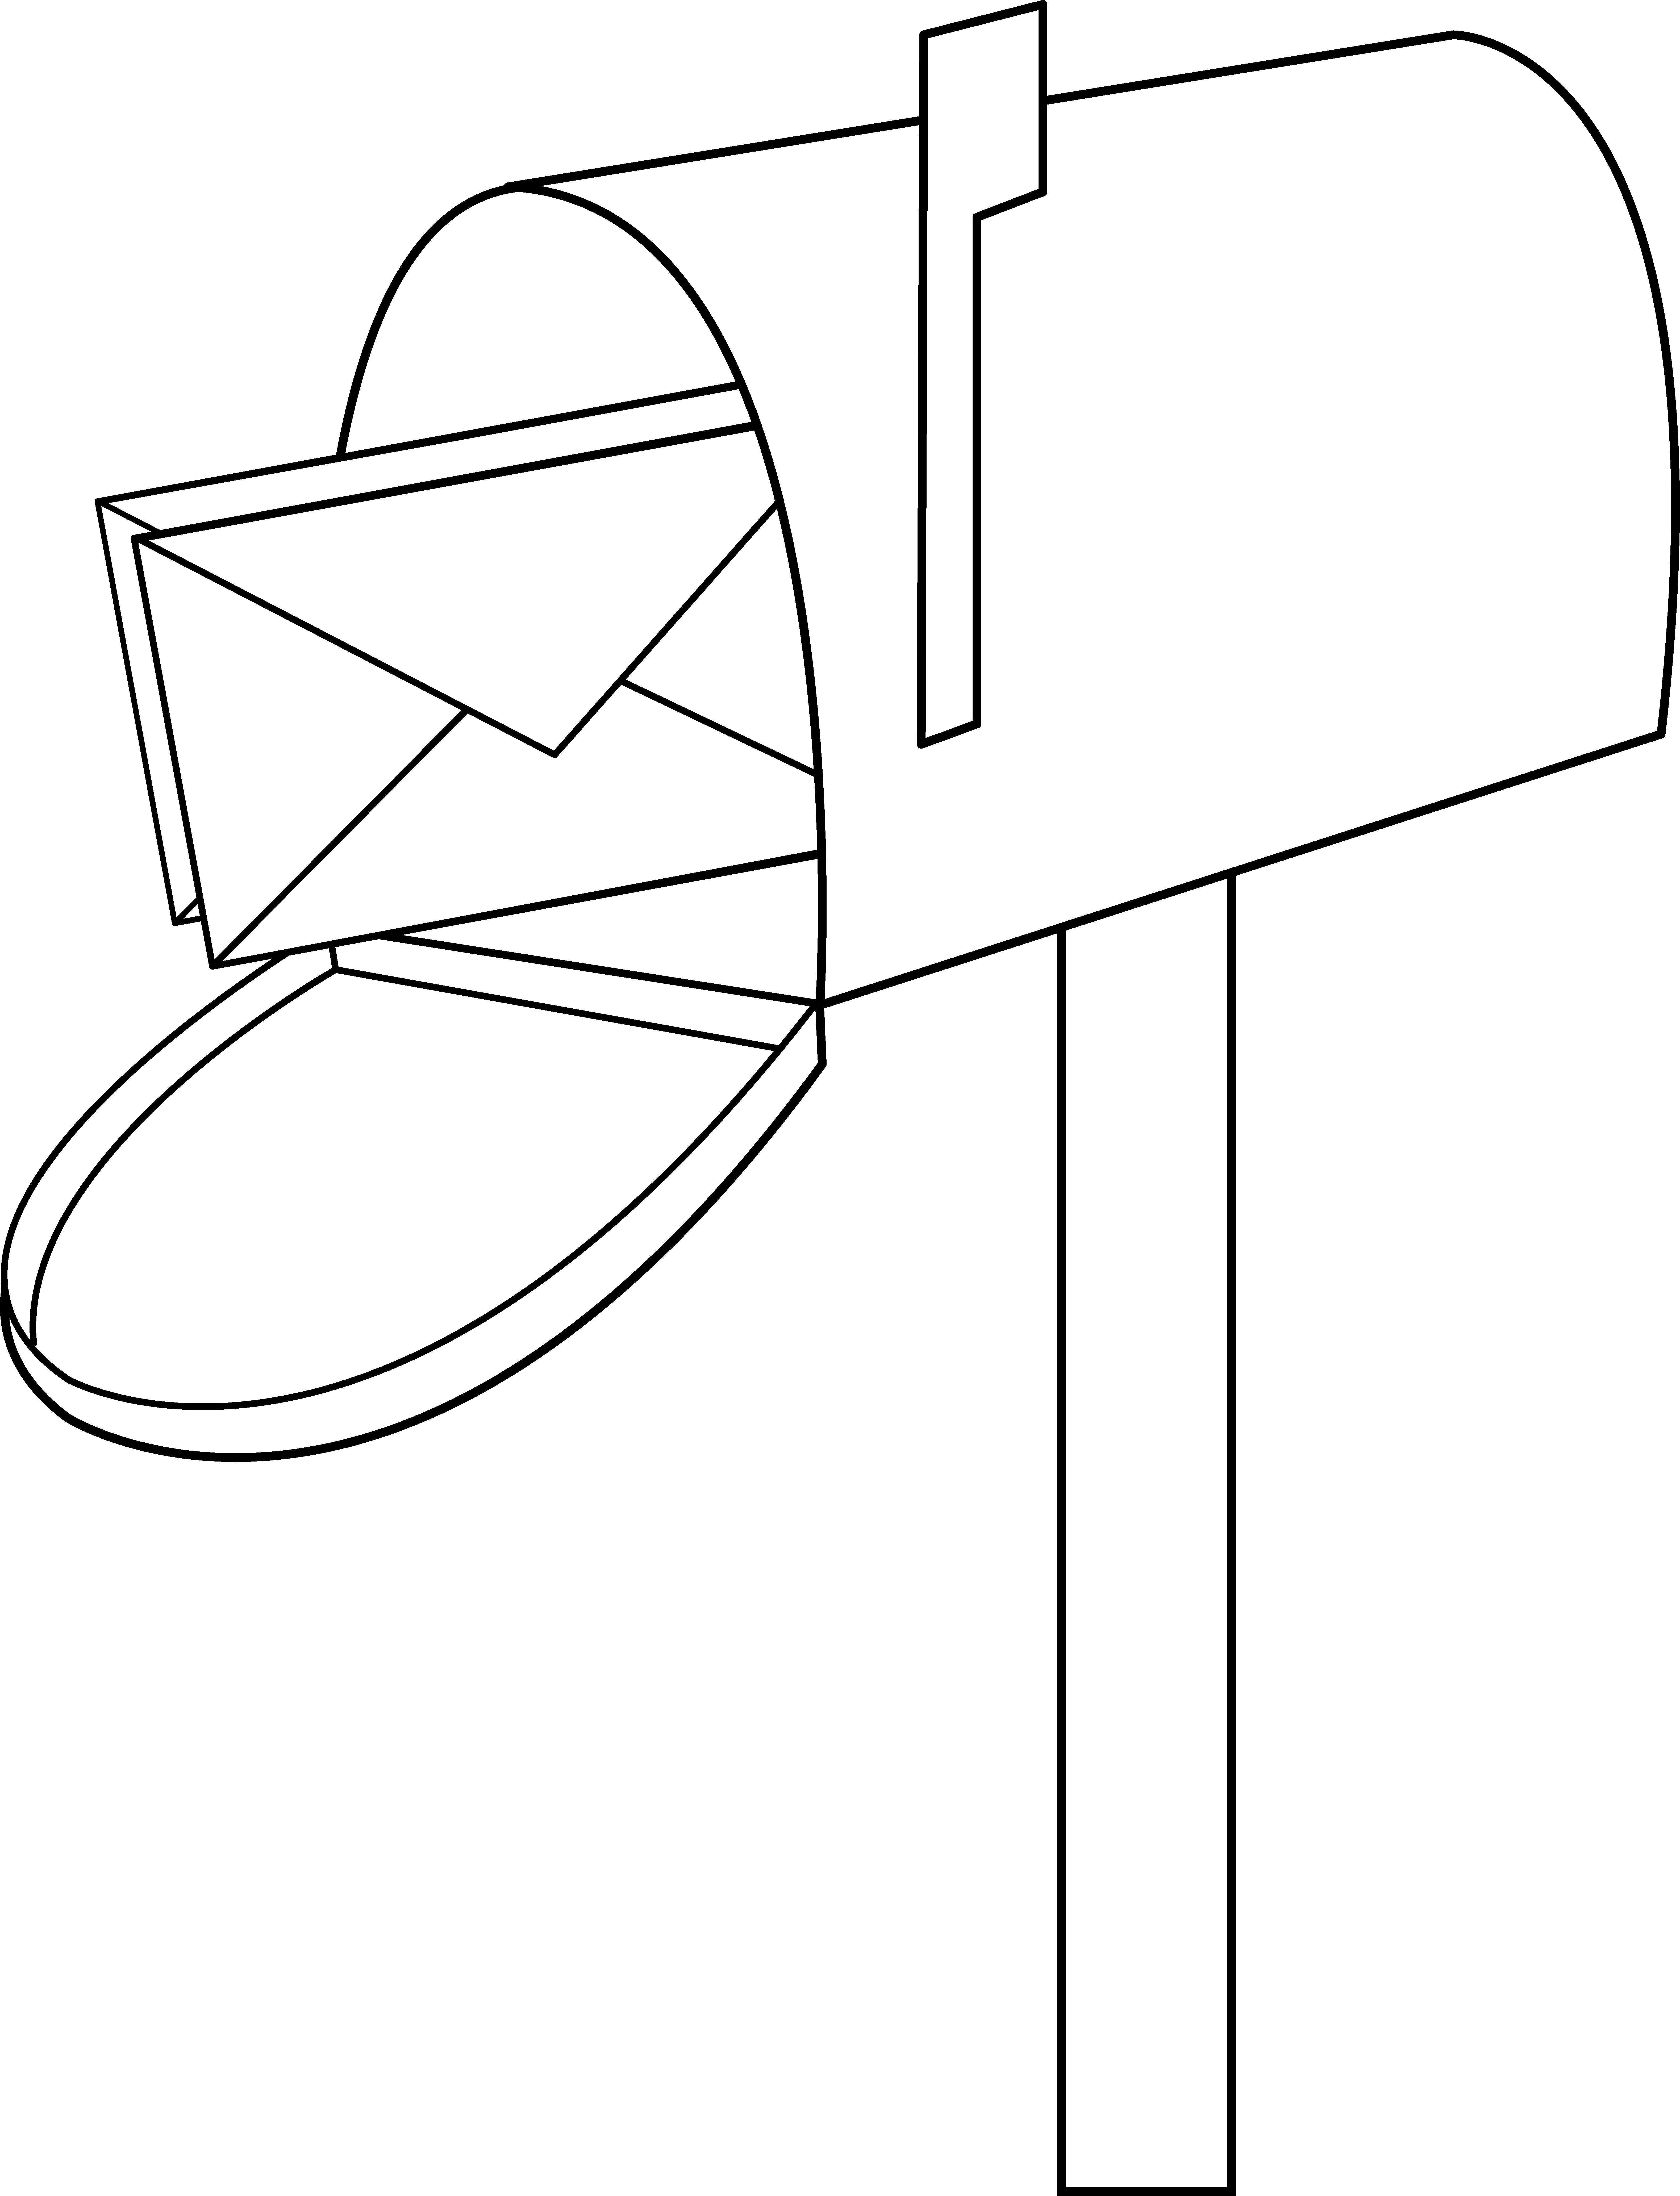 Mailbox 8 pics of mail cartoon coloring page mail clip art.